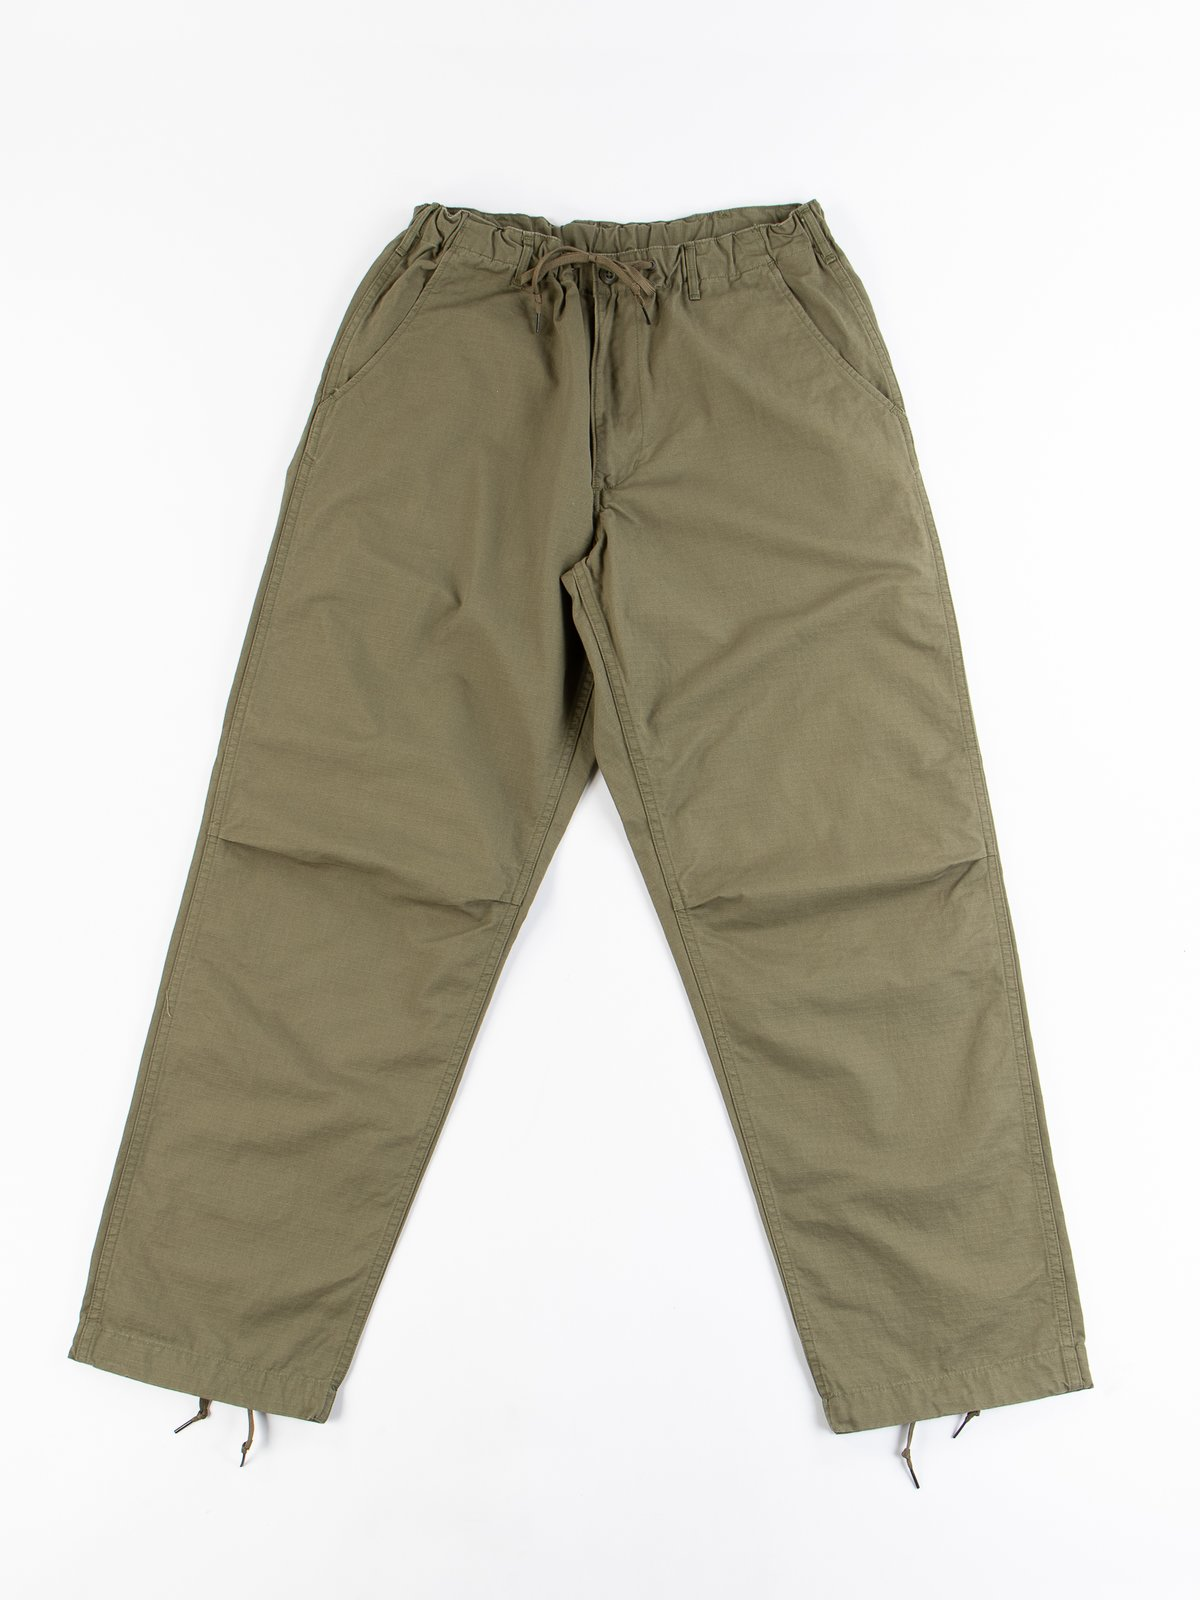 Army Green Ripstop TBB Service Pant - Image 1